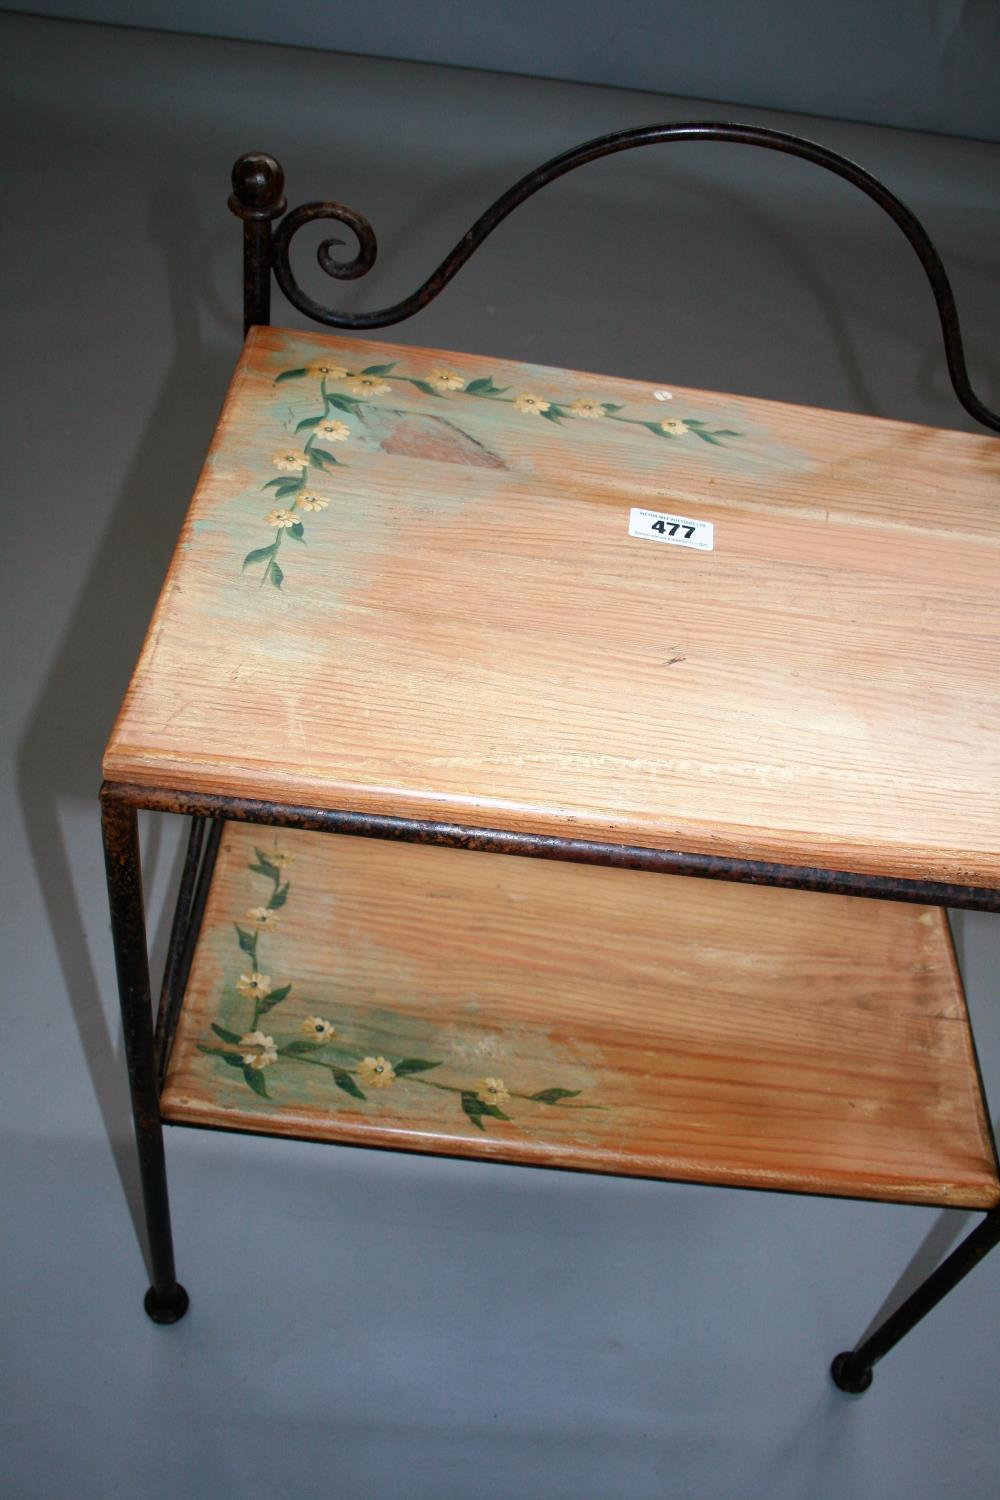 Wrought iron and painted wood two tier shelf and two pairs of bed side lockers 54W x 41H x 38D - Image 6 of 6